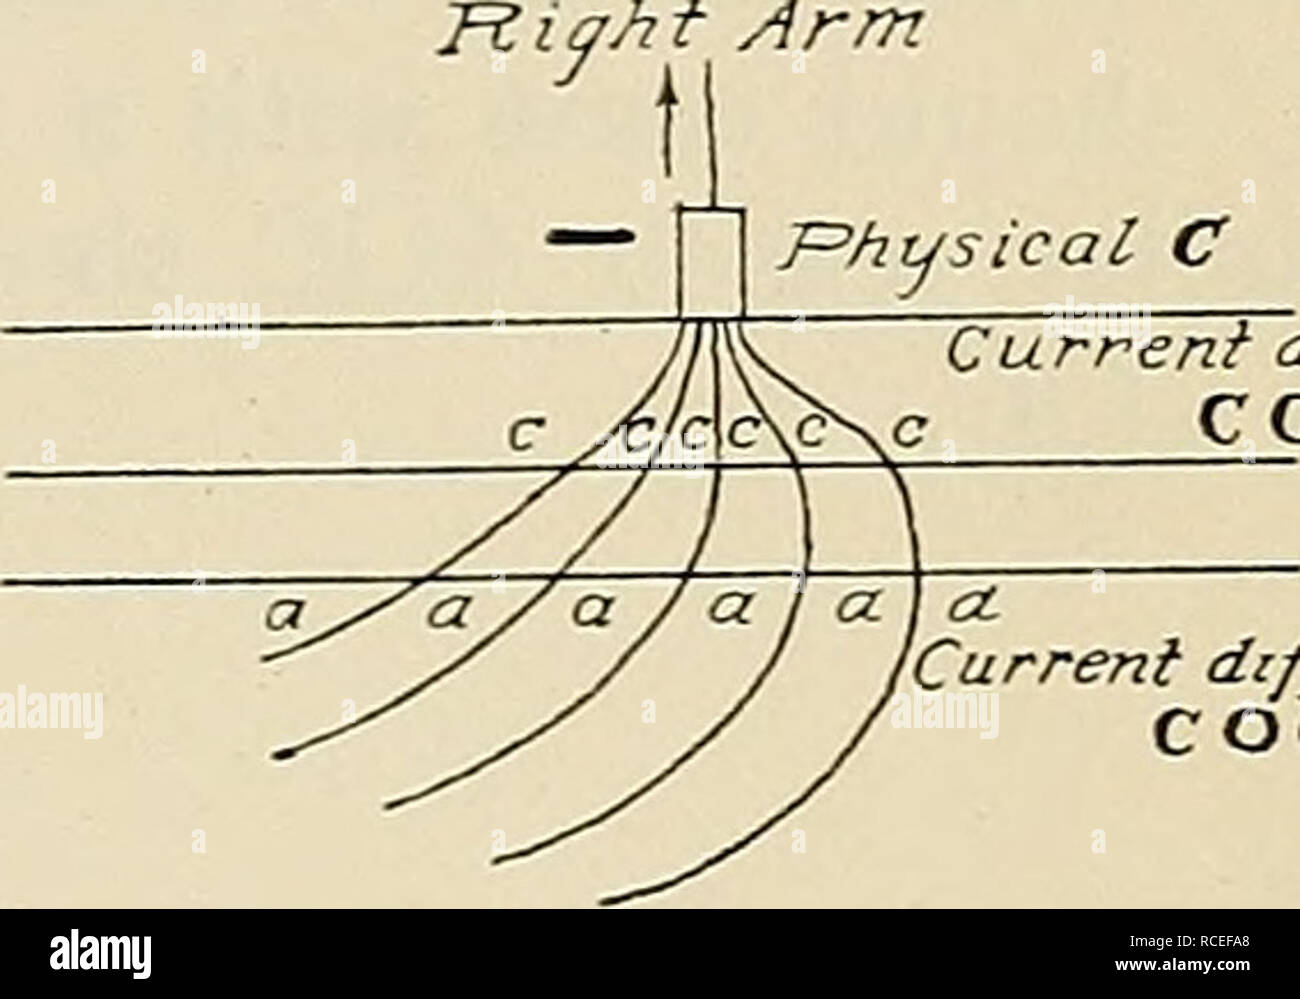 hight resolution of physiology current dense ccc i current diffuse coc rar fig 25 diagram of paths taken by direct current applied to human skin